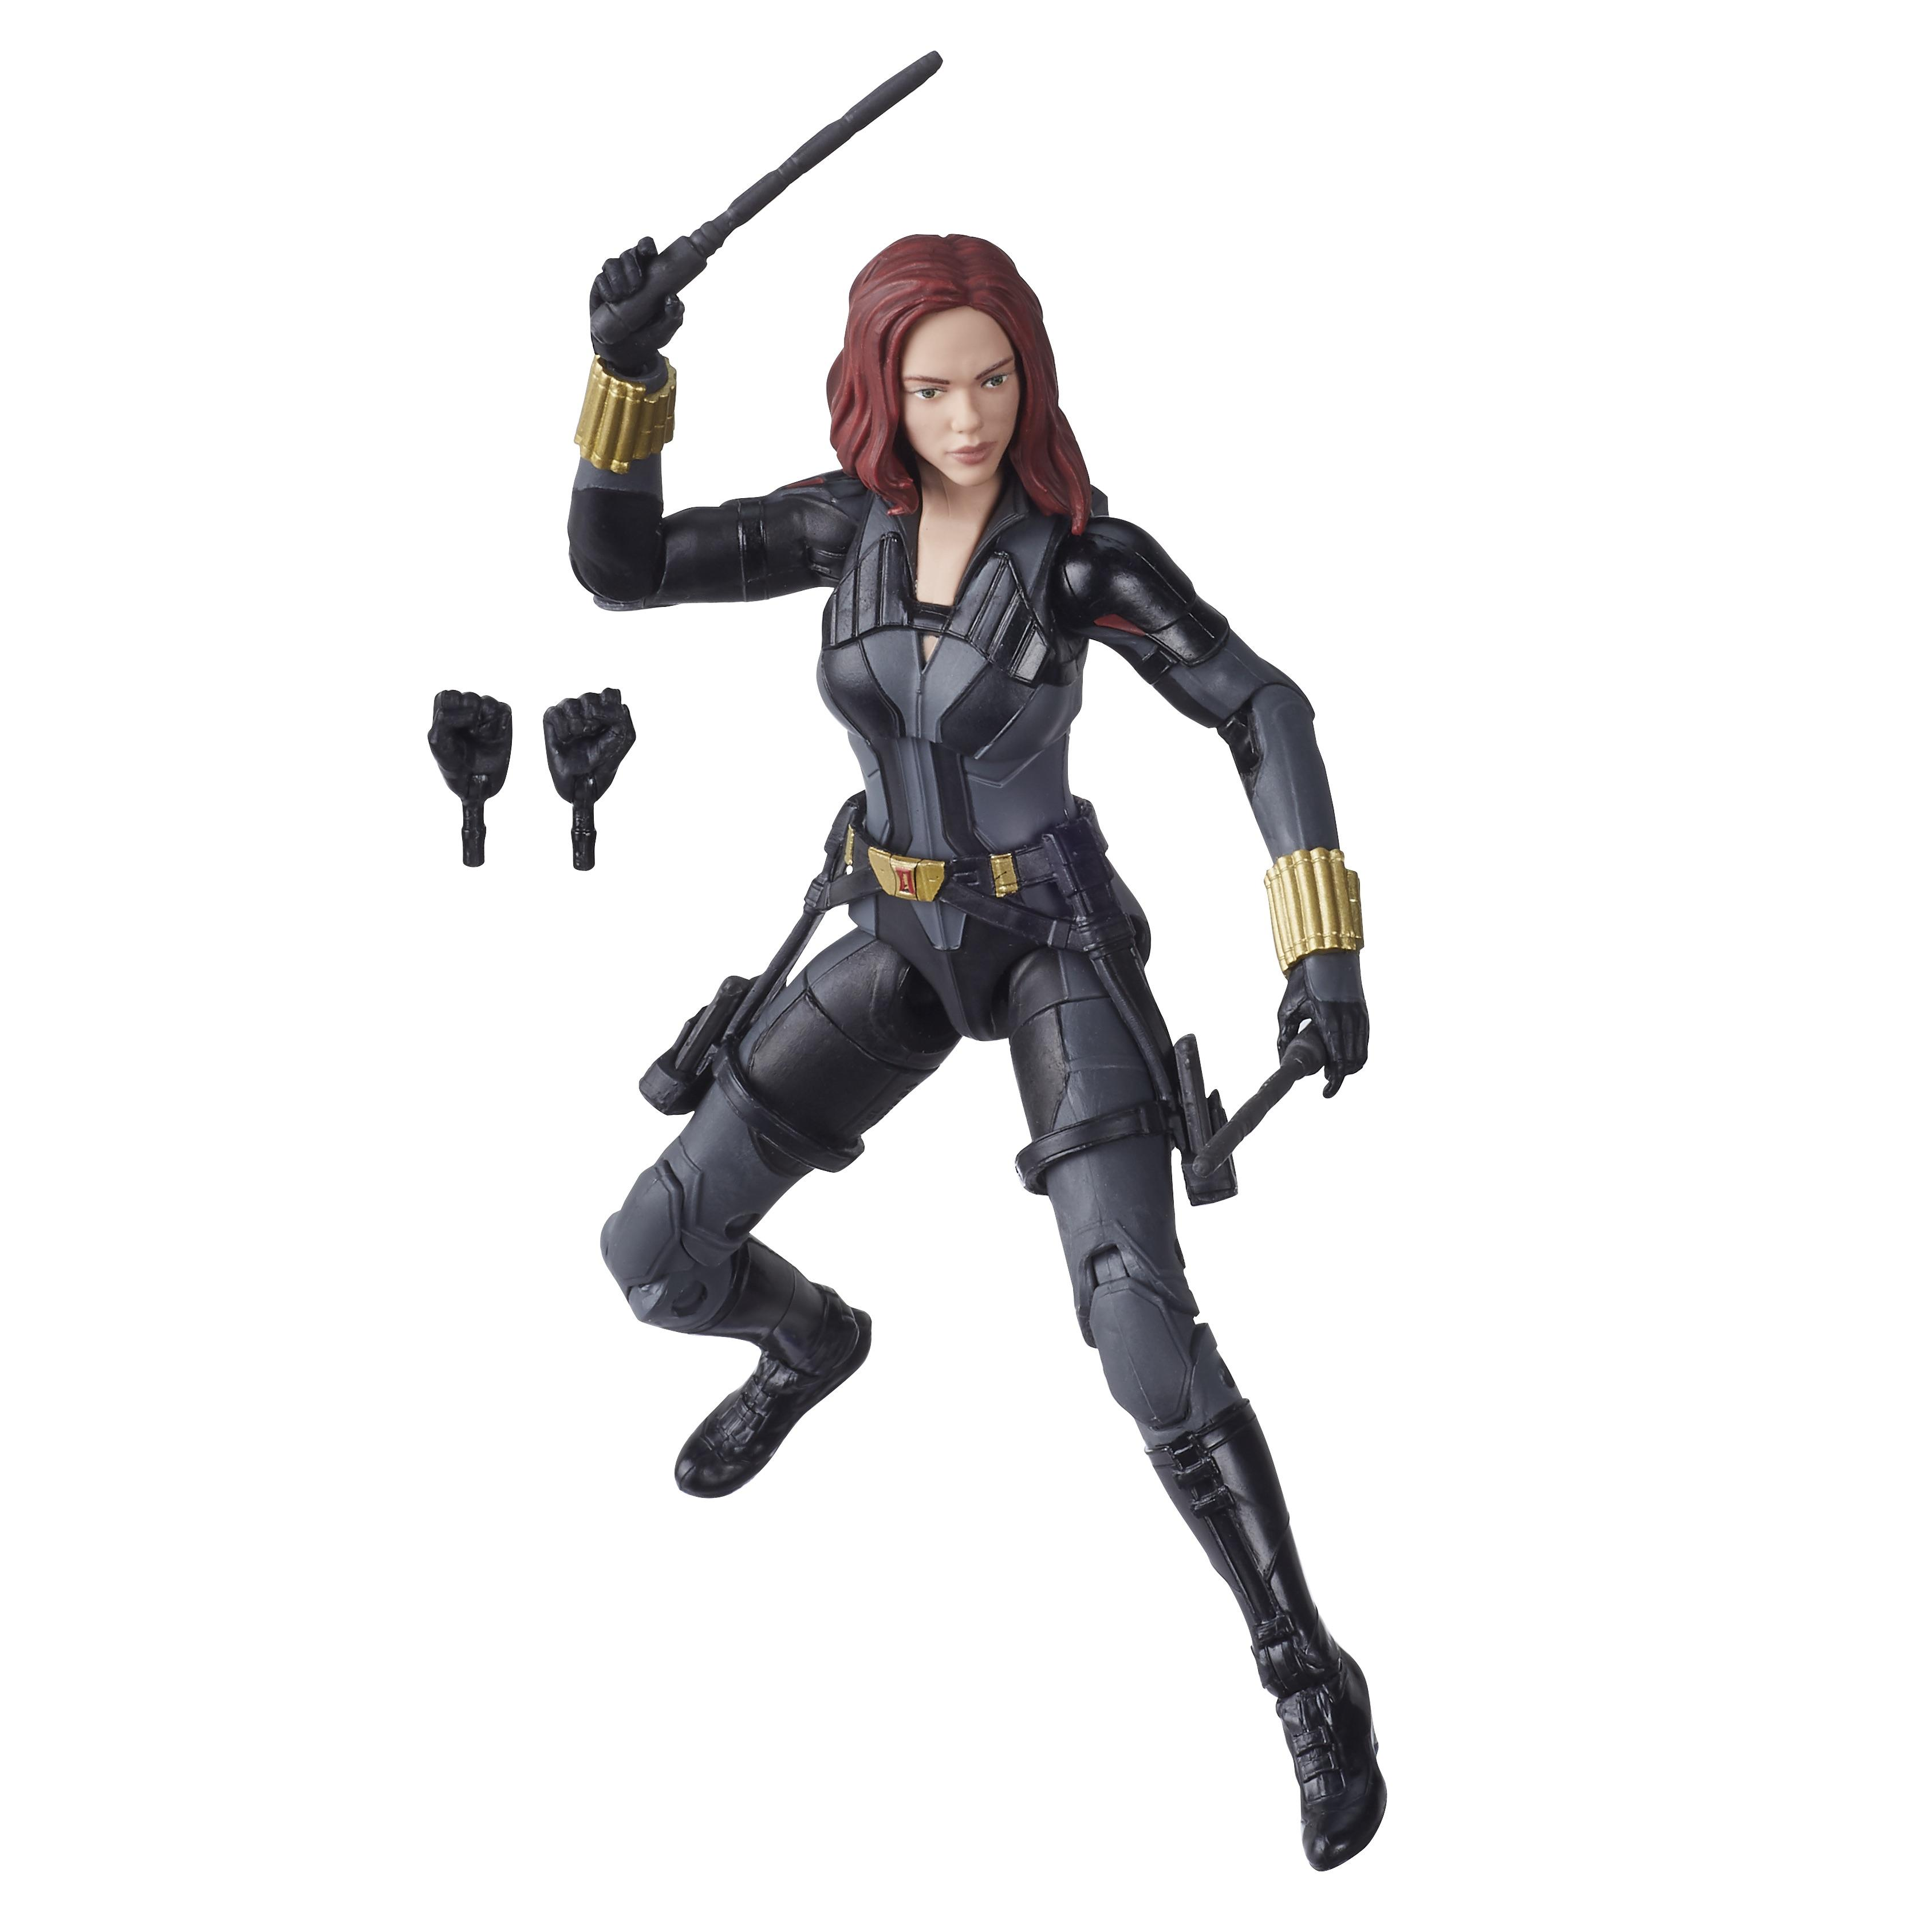 'Black Widow' action figures offer detailed look at key characters in Marvel prequel (exclusive)